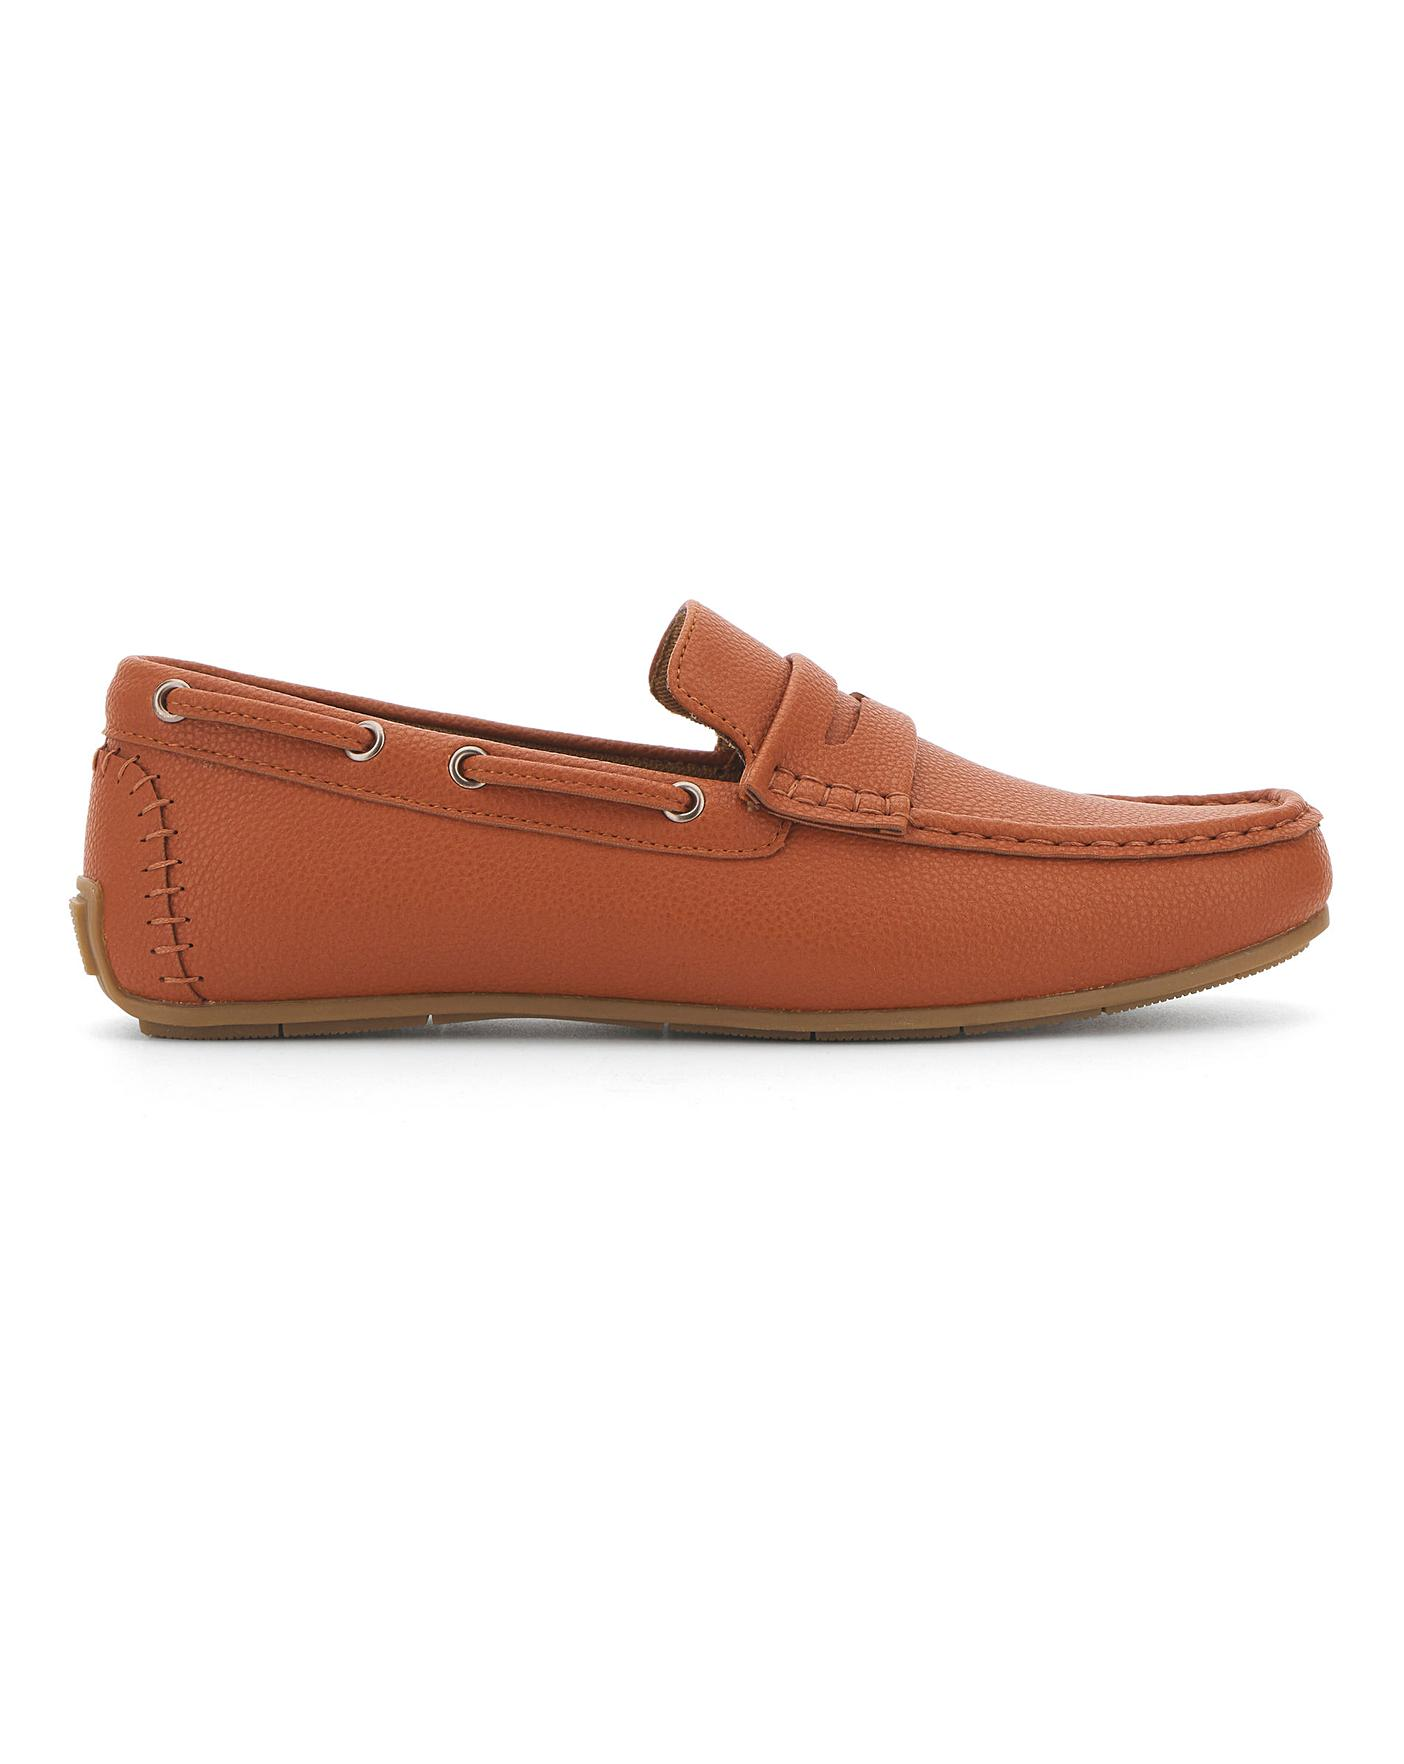 Colbert Leather Look Driving Loafer